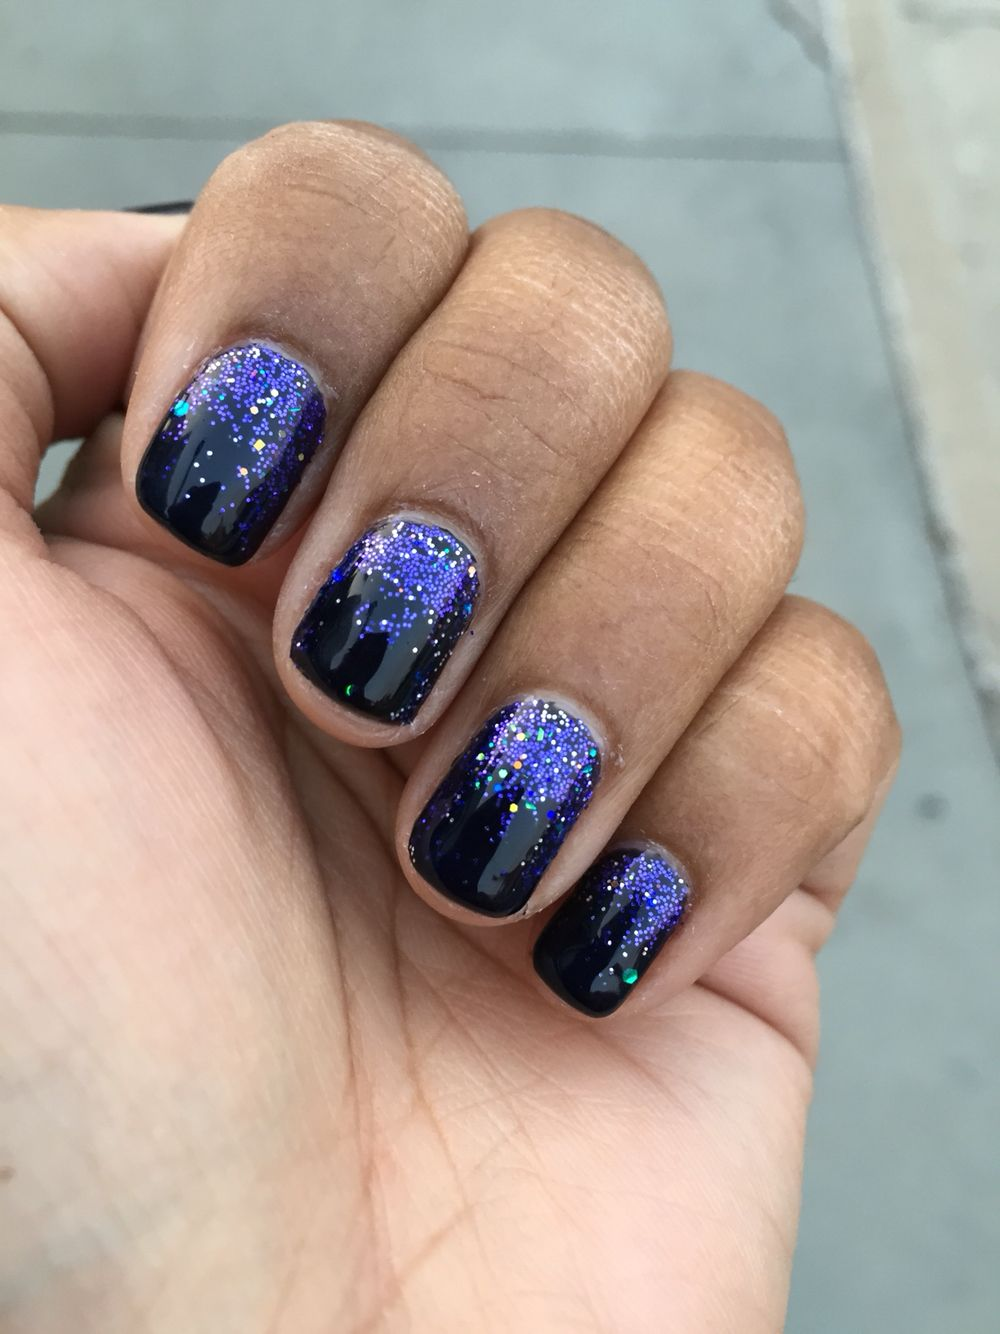 My nails, loose glitter with gel manicure   Nails   Pinterest ...